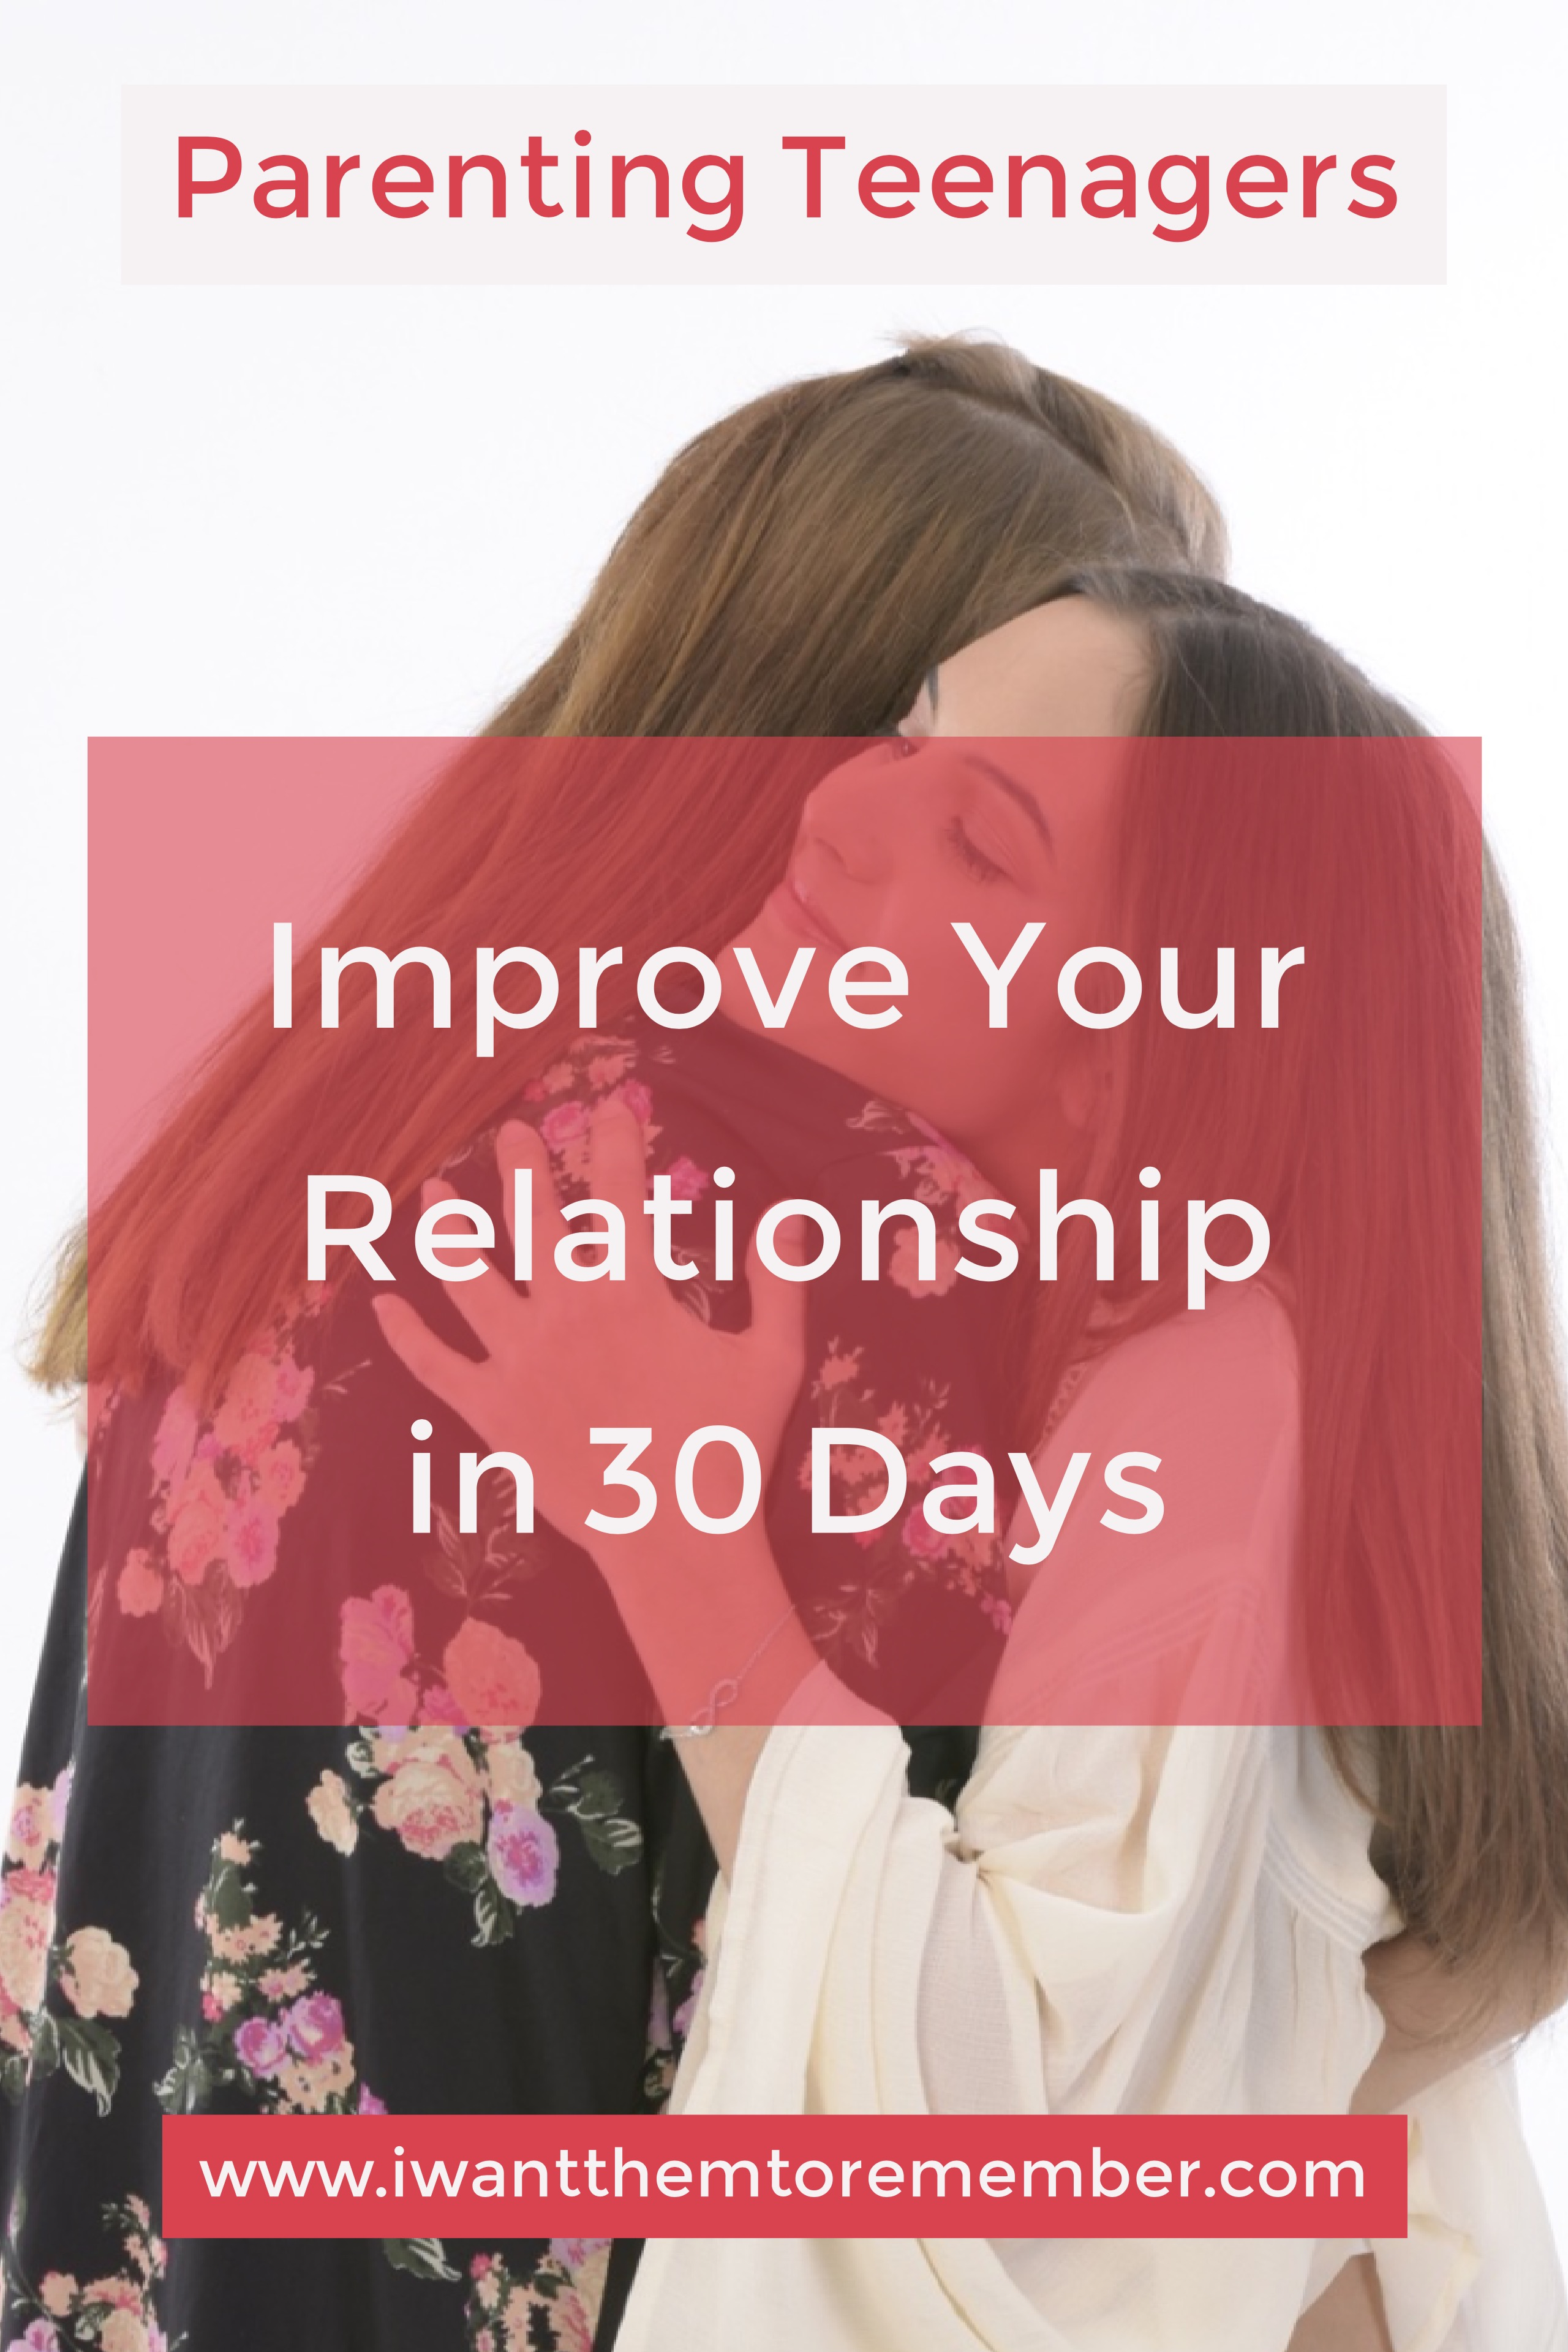 The hardest place to live out our faith is at home. Parenting teenagers has made working on family relationship both harder and more important. 30 Days: Turning the Hearts of Parents and Teenagers Toward Each Other helps build stronger relationships.